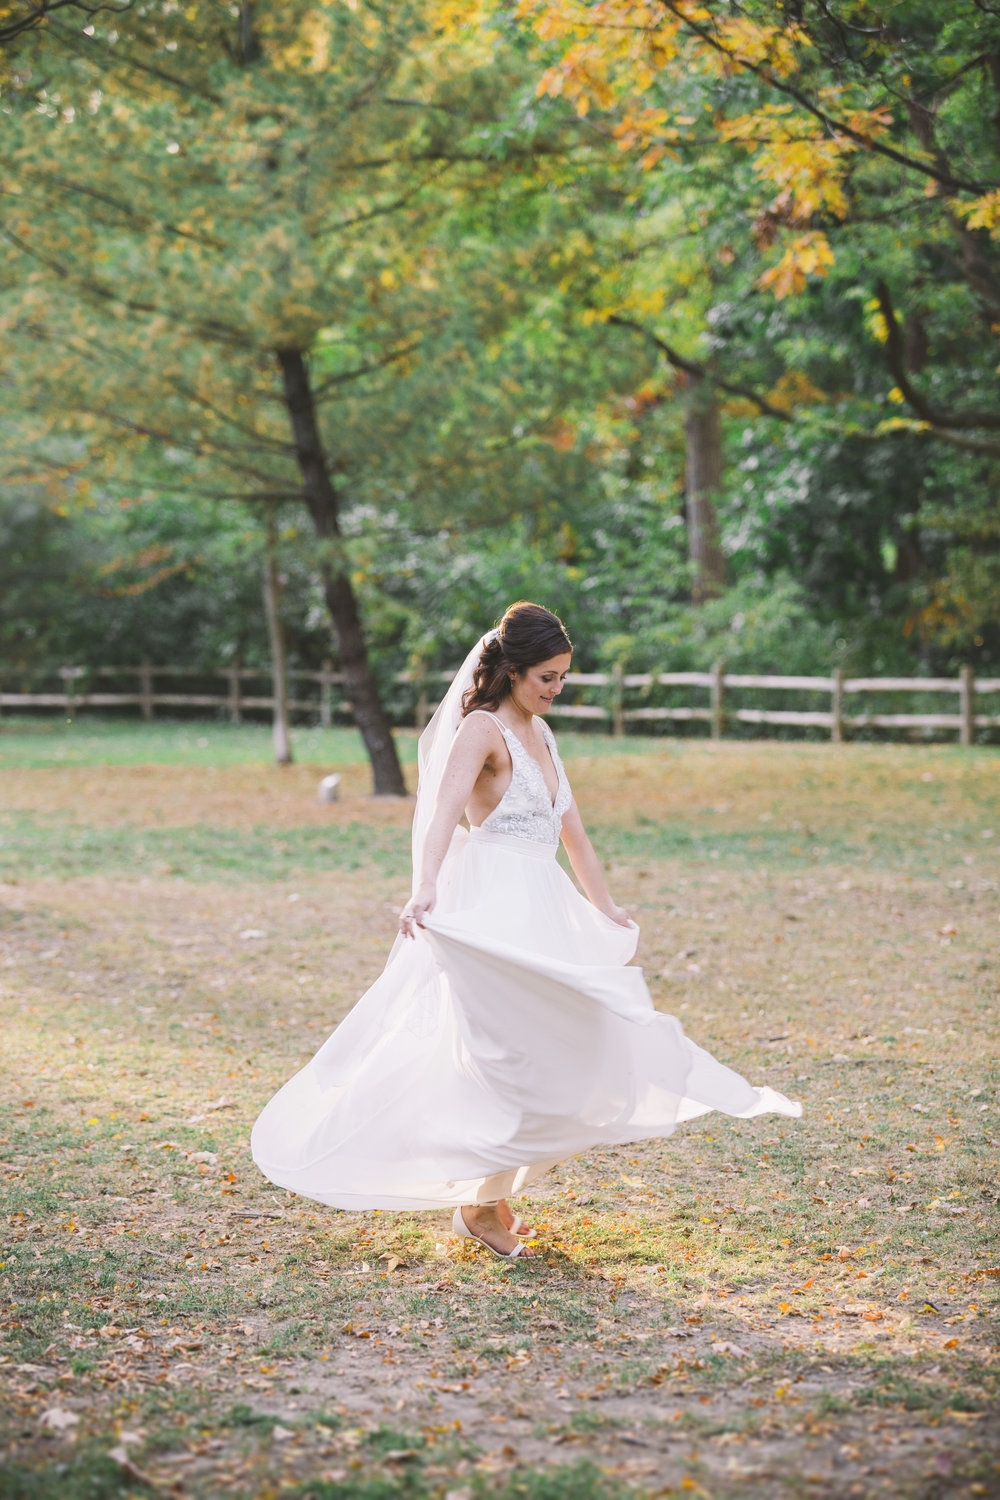 Bride twirling in wedding dress in the fall.